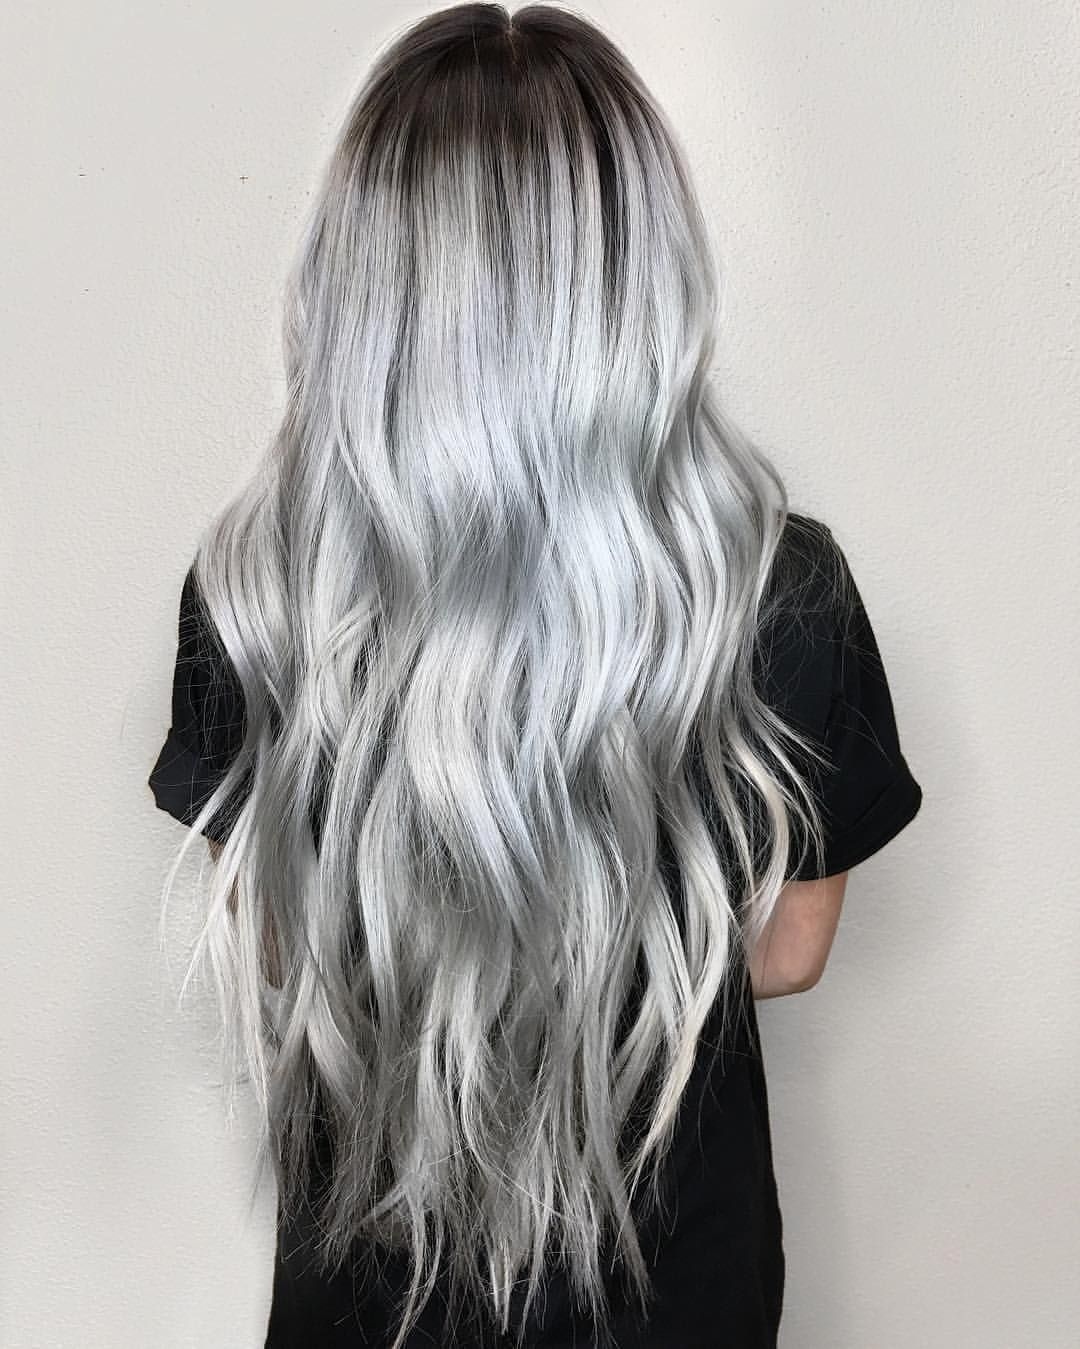 2020 New Gray Hair Wigs For African American Women Embracing Gray Hair At 30 Hair Treatment For White Hair Grey Hair At 25 Female Extra Long Wigs Couture Wigs